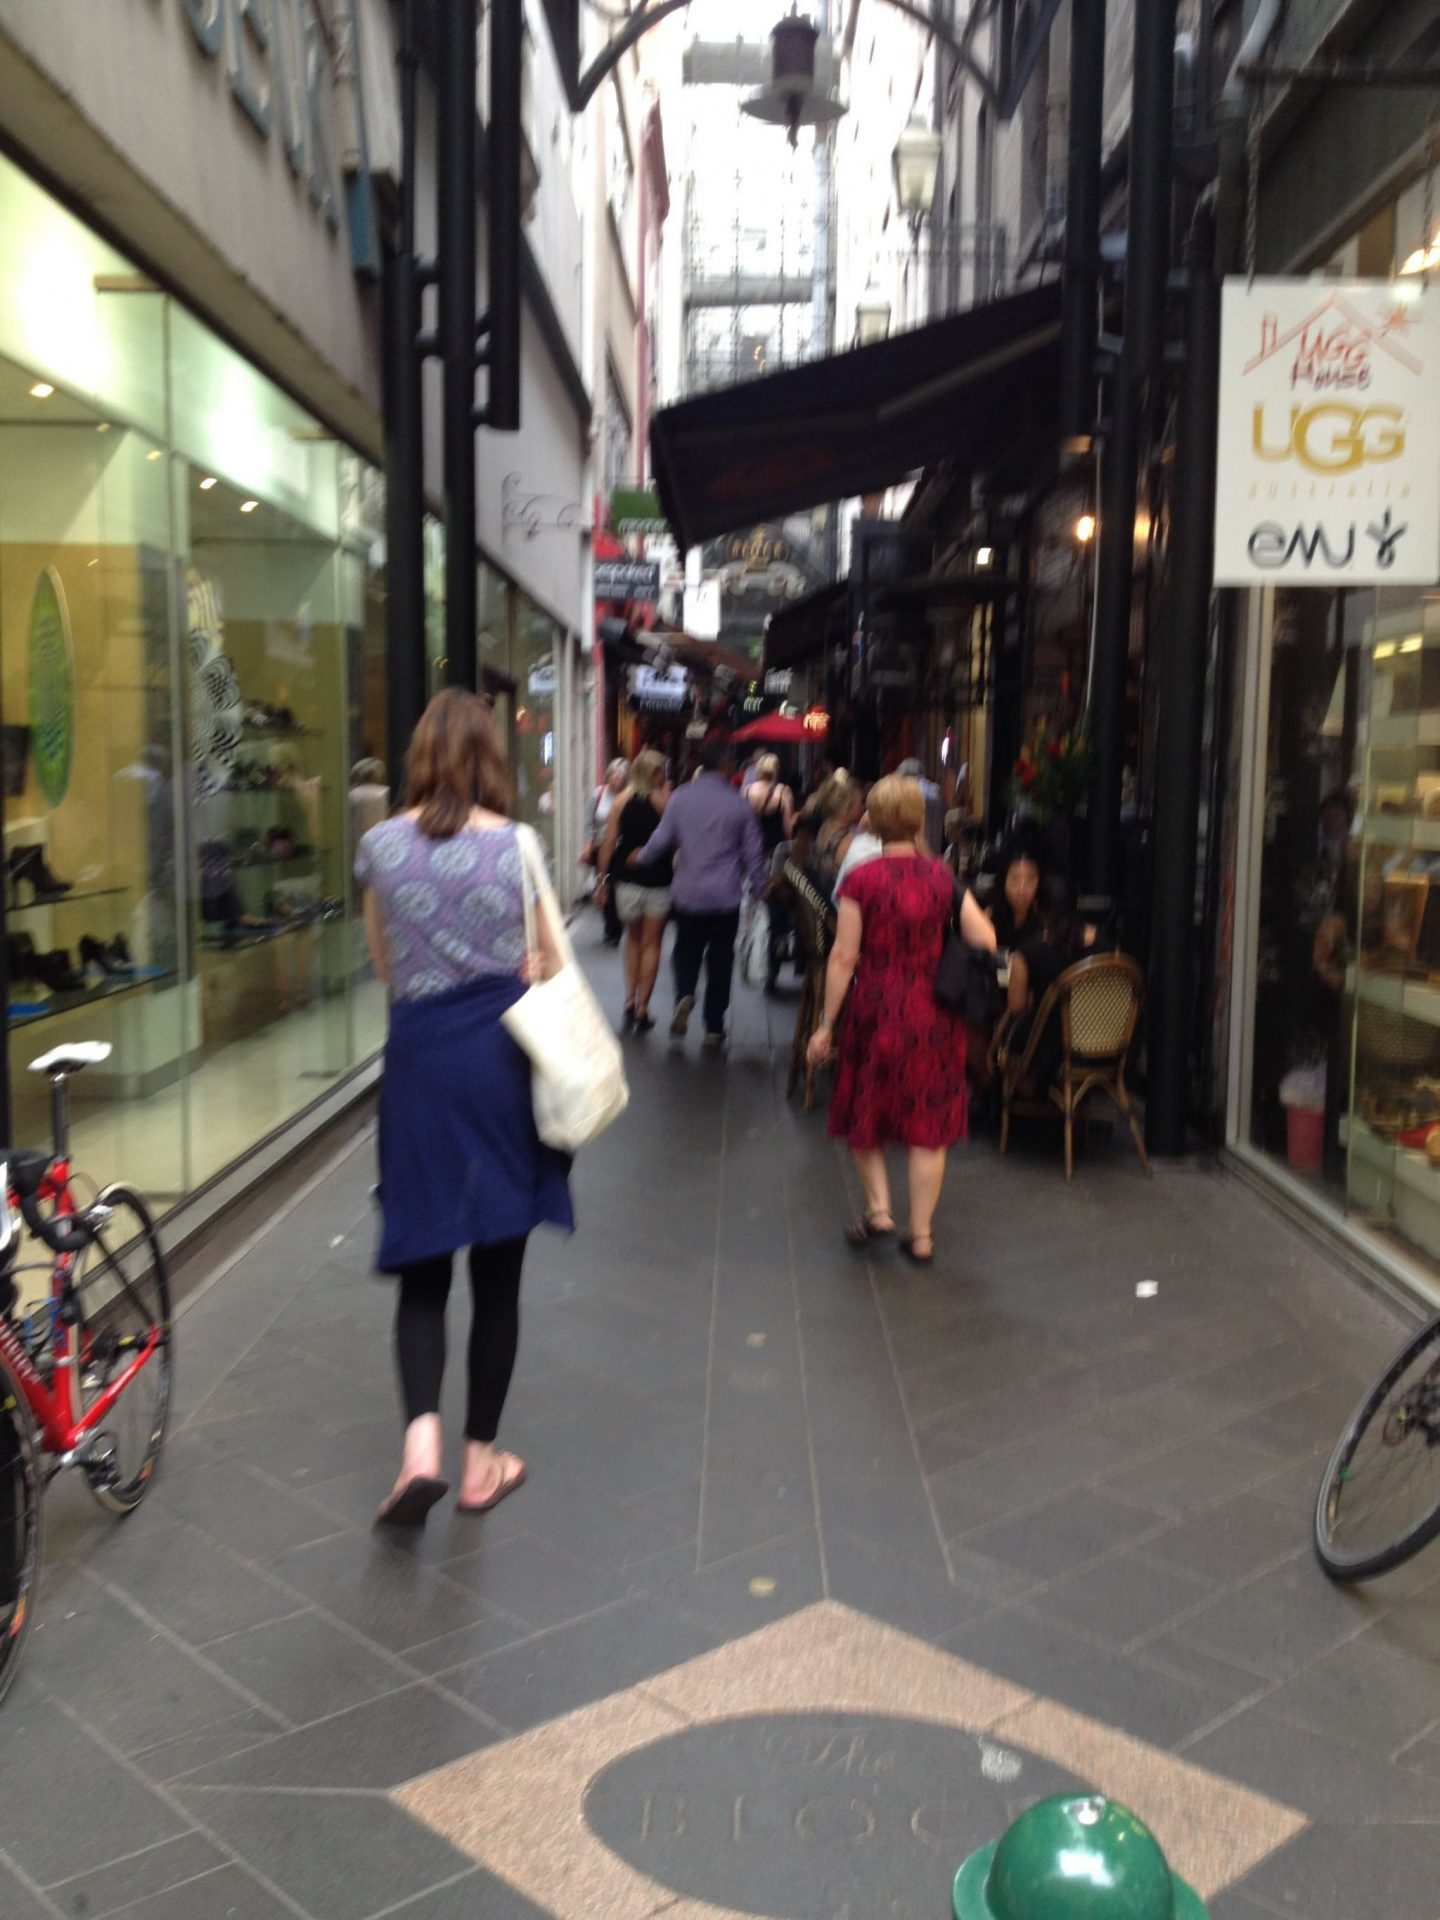 Finding alleyways when exploring Melbourne